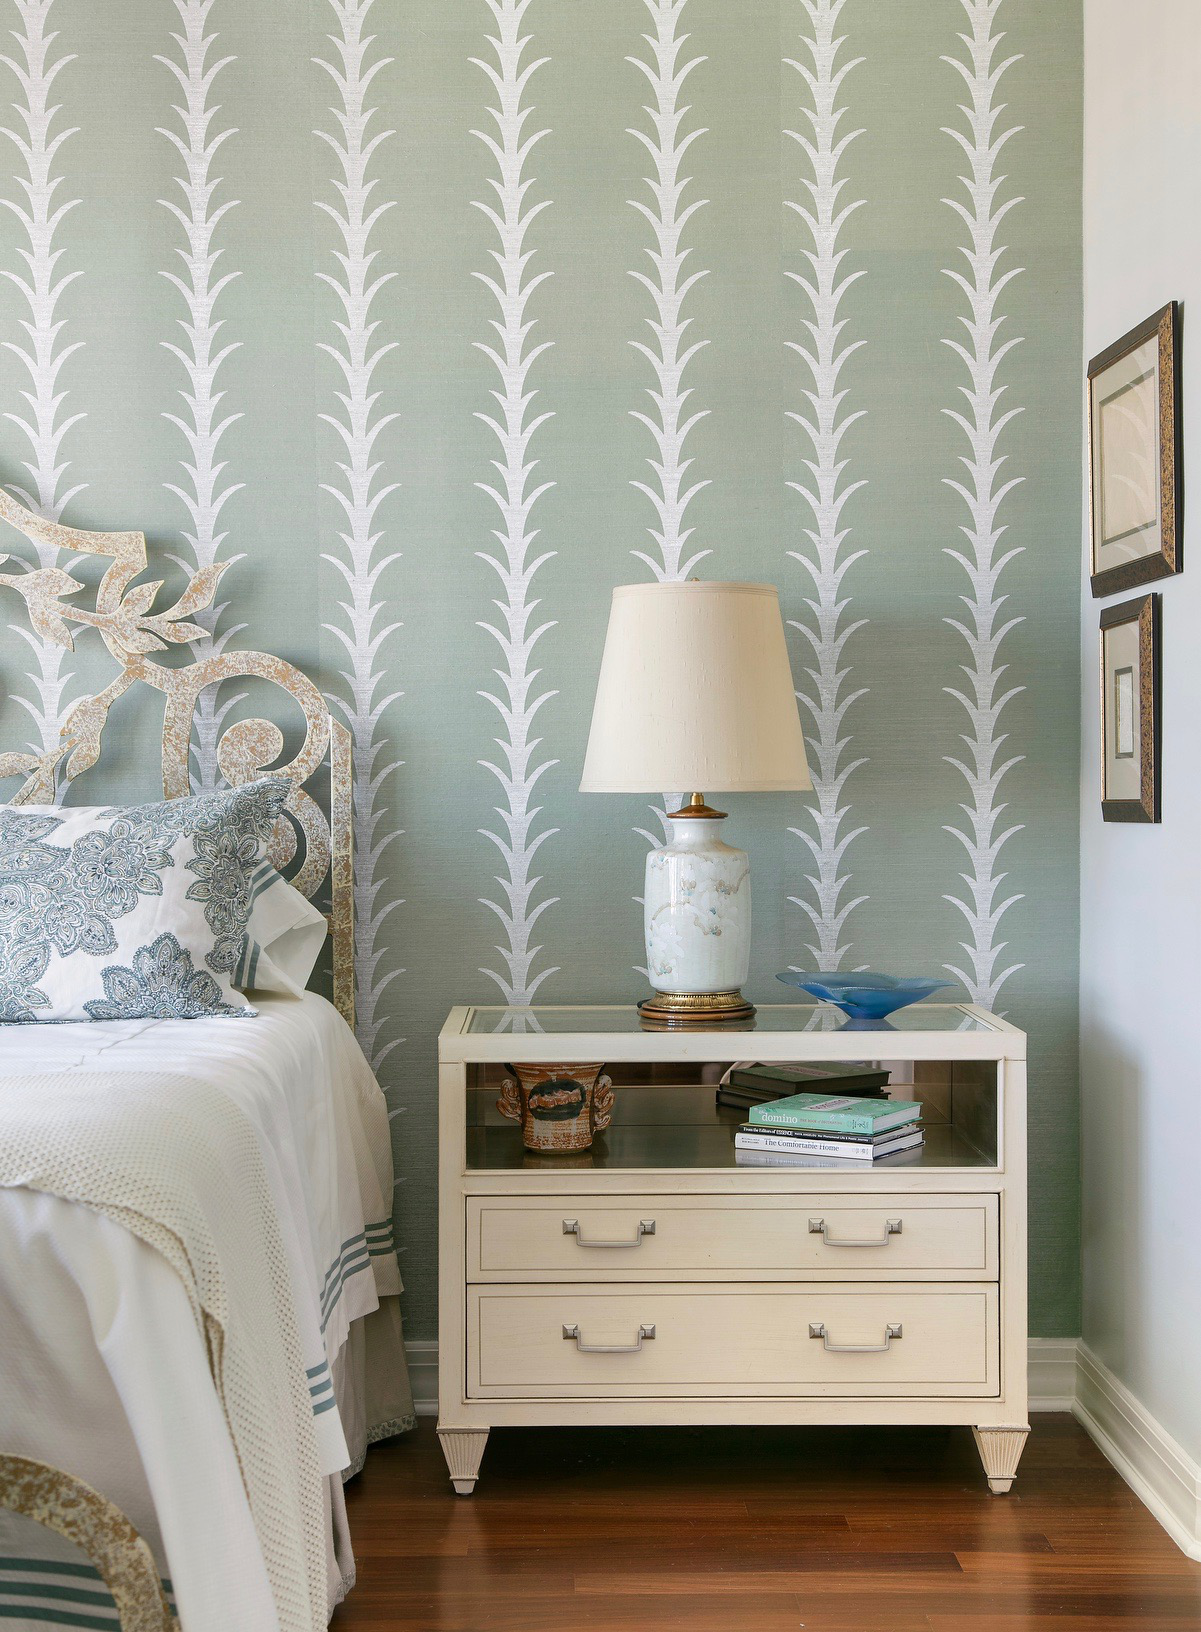 Master bedroom with painted grasscloth wallpaper by Schumacher by Eclectic Home